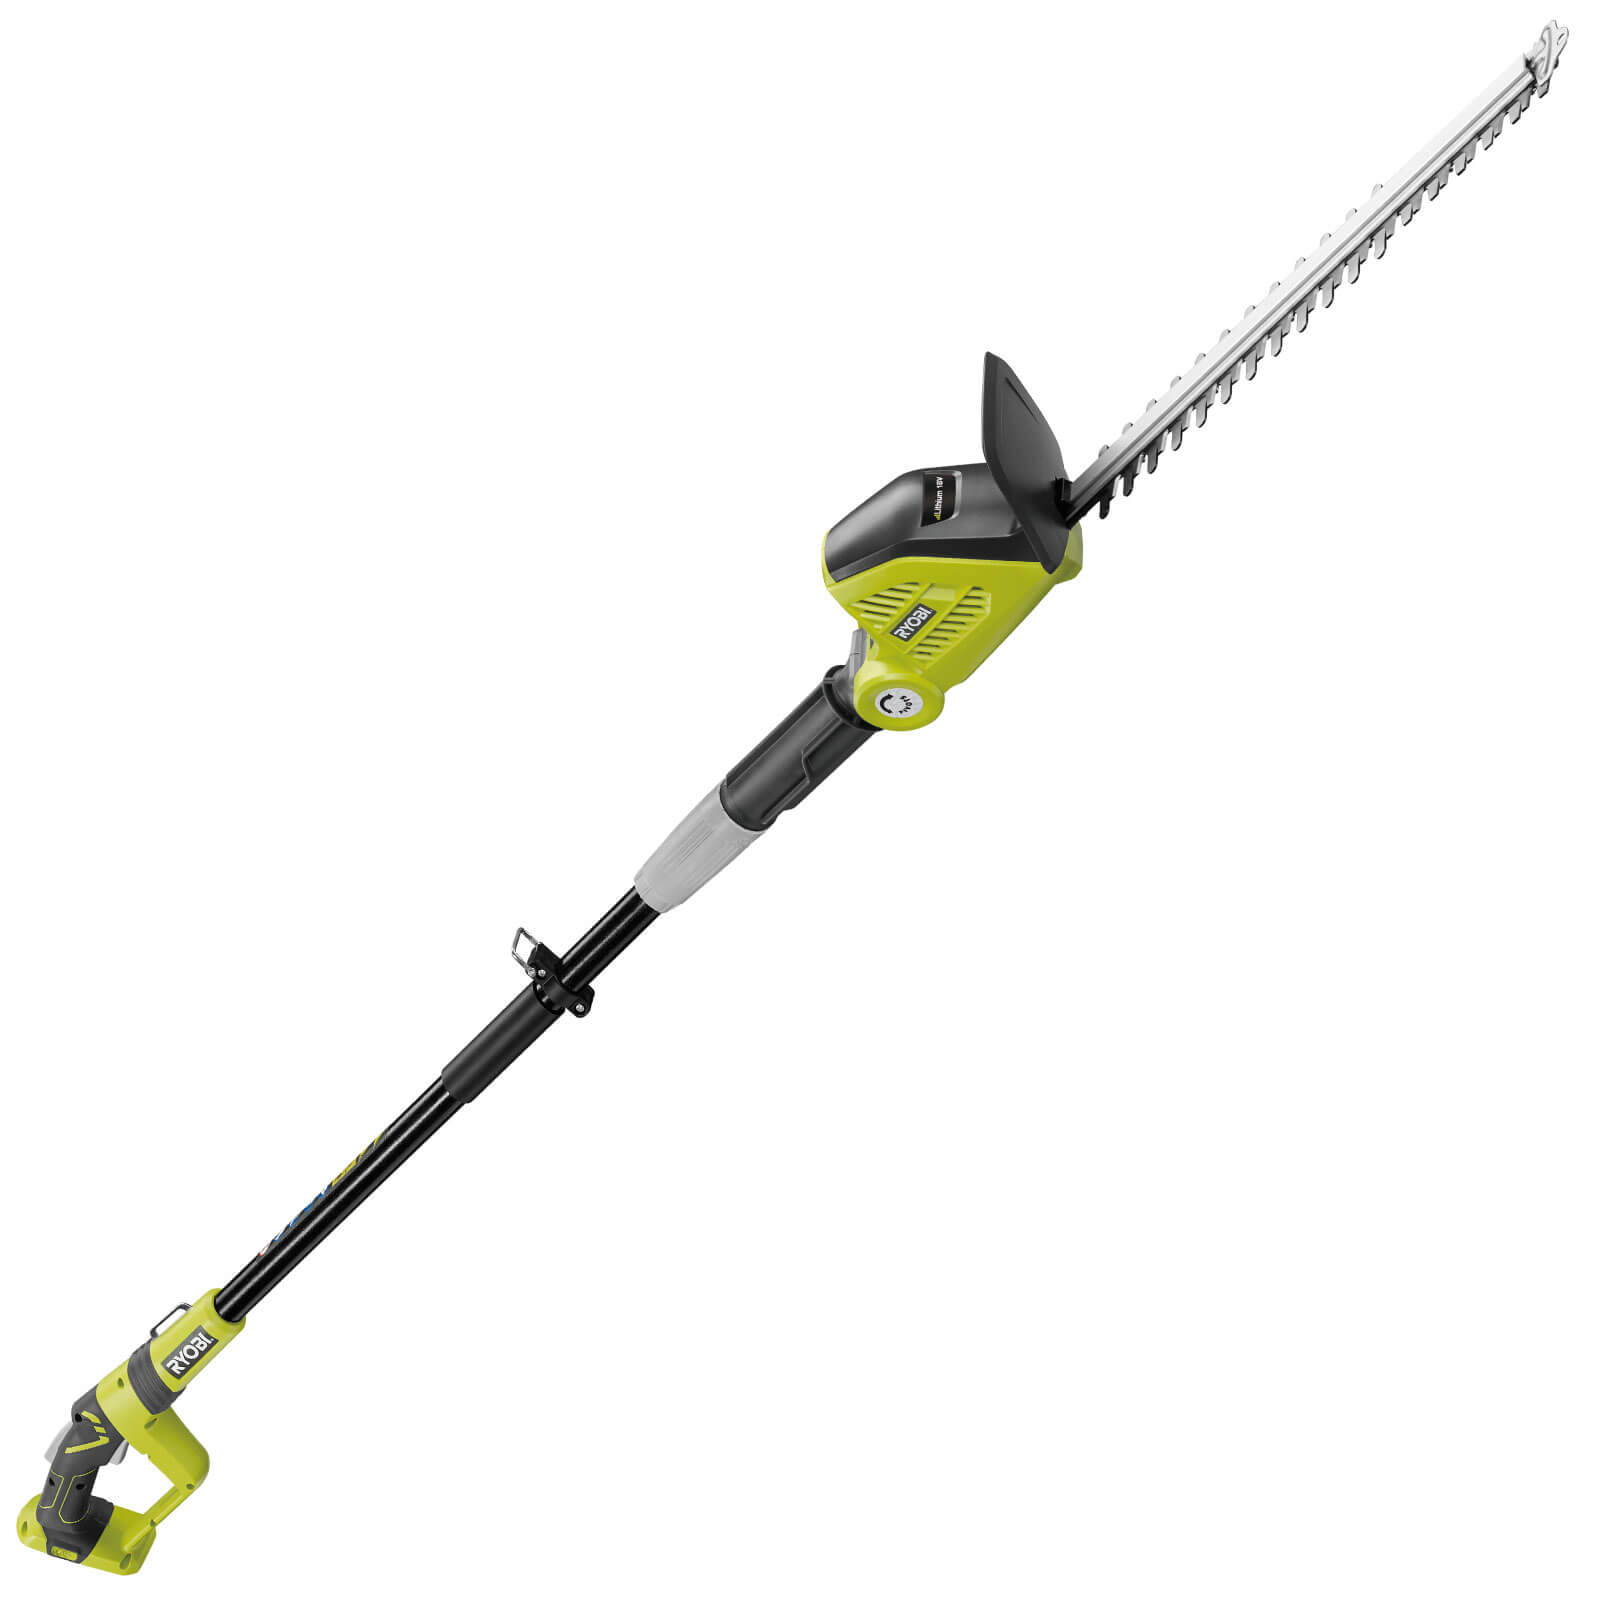 Ryobi OPT1845 18v Cordless Long Reach Hedge Trimmer No Batteries No Charger